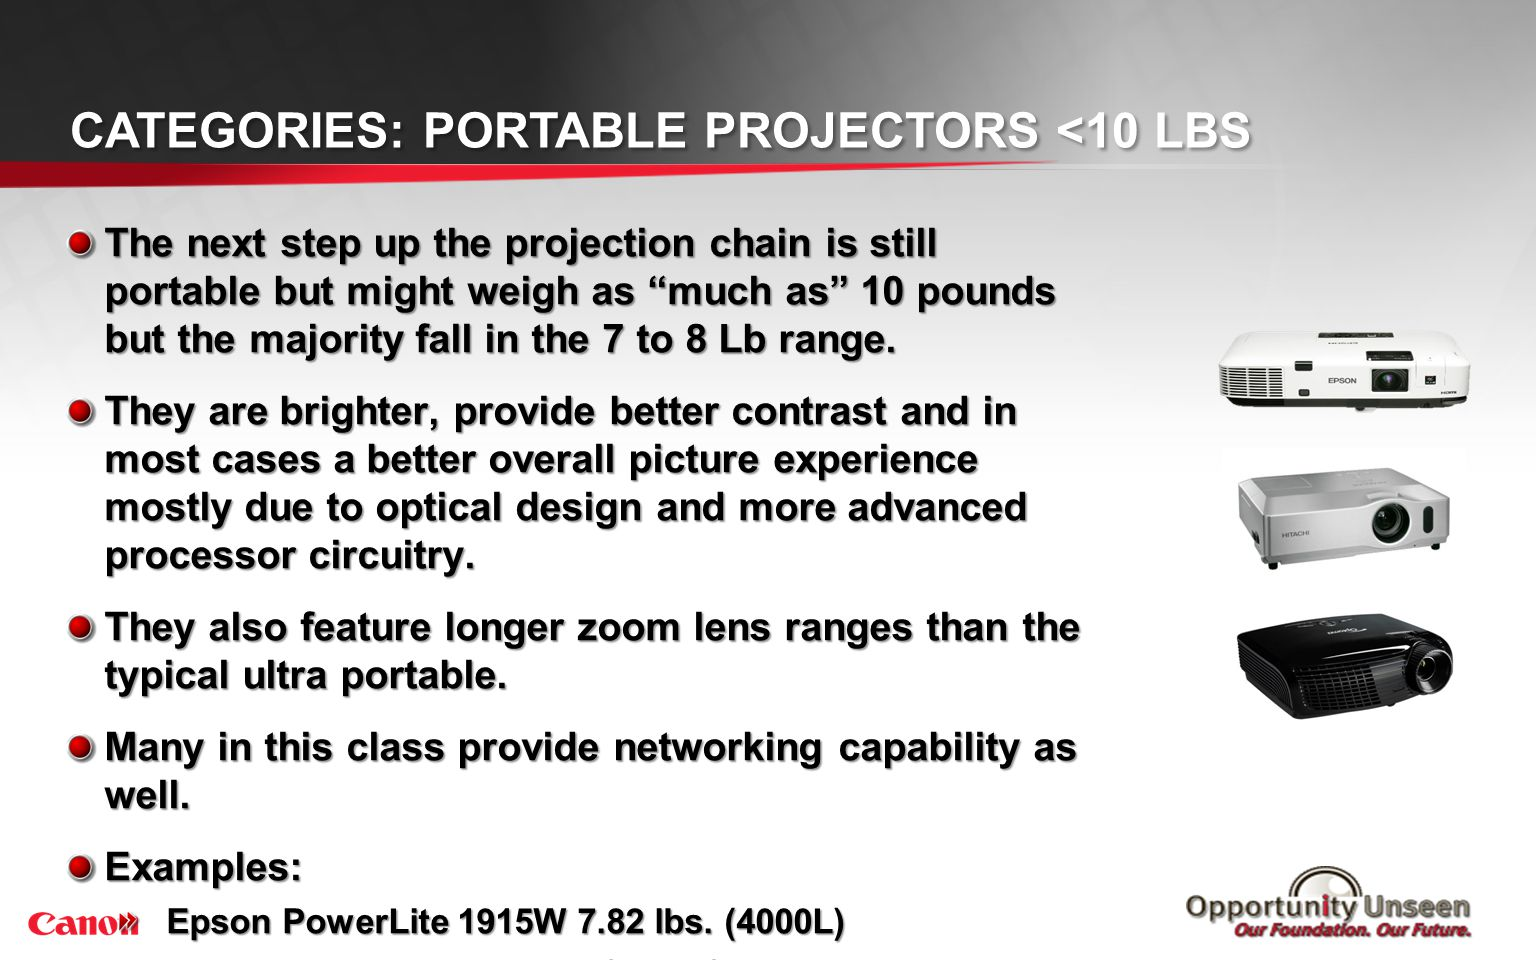 CATEGORIES: PORTABLE PROJECTORS <10 LBS The next step up the projection chain is still portable but might weigh as much as 10 pounds but the majority